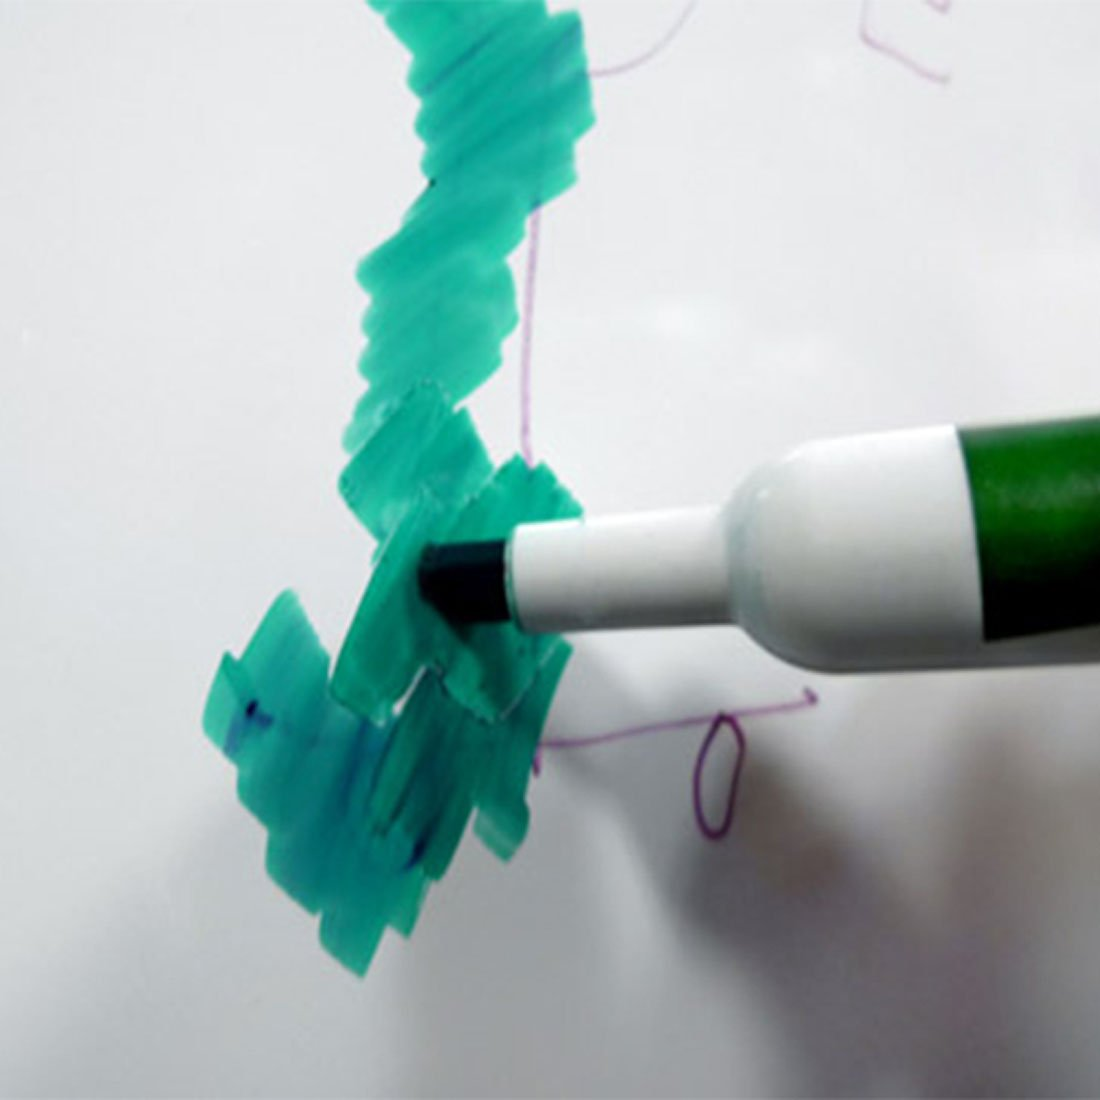 scribbling-expo-over-permanent-marker-to-remove.jpg